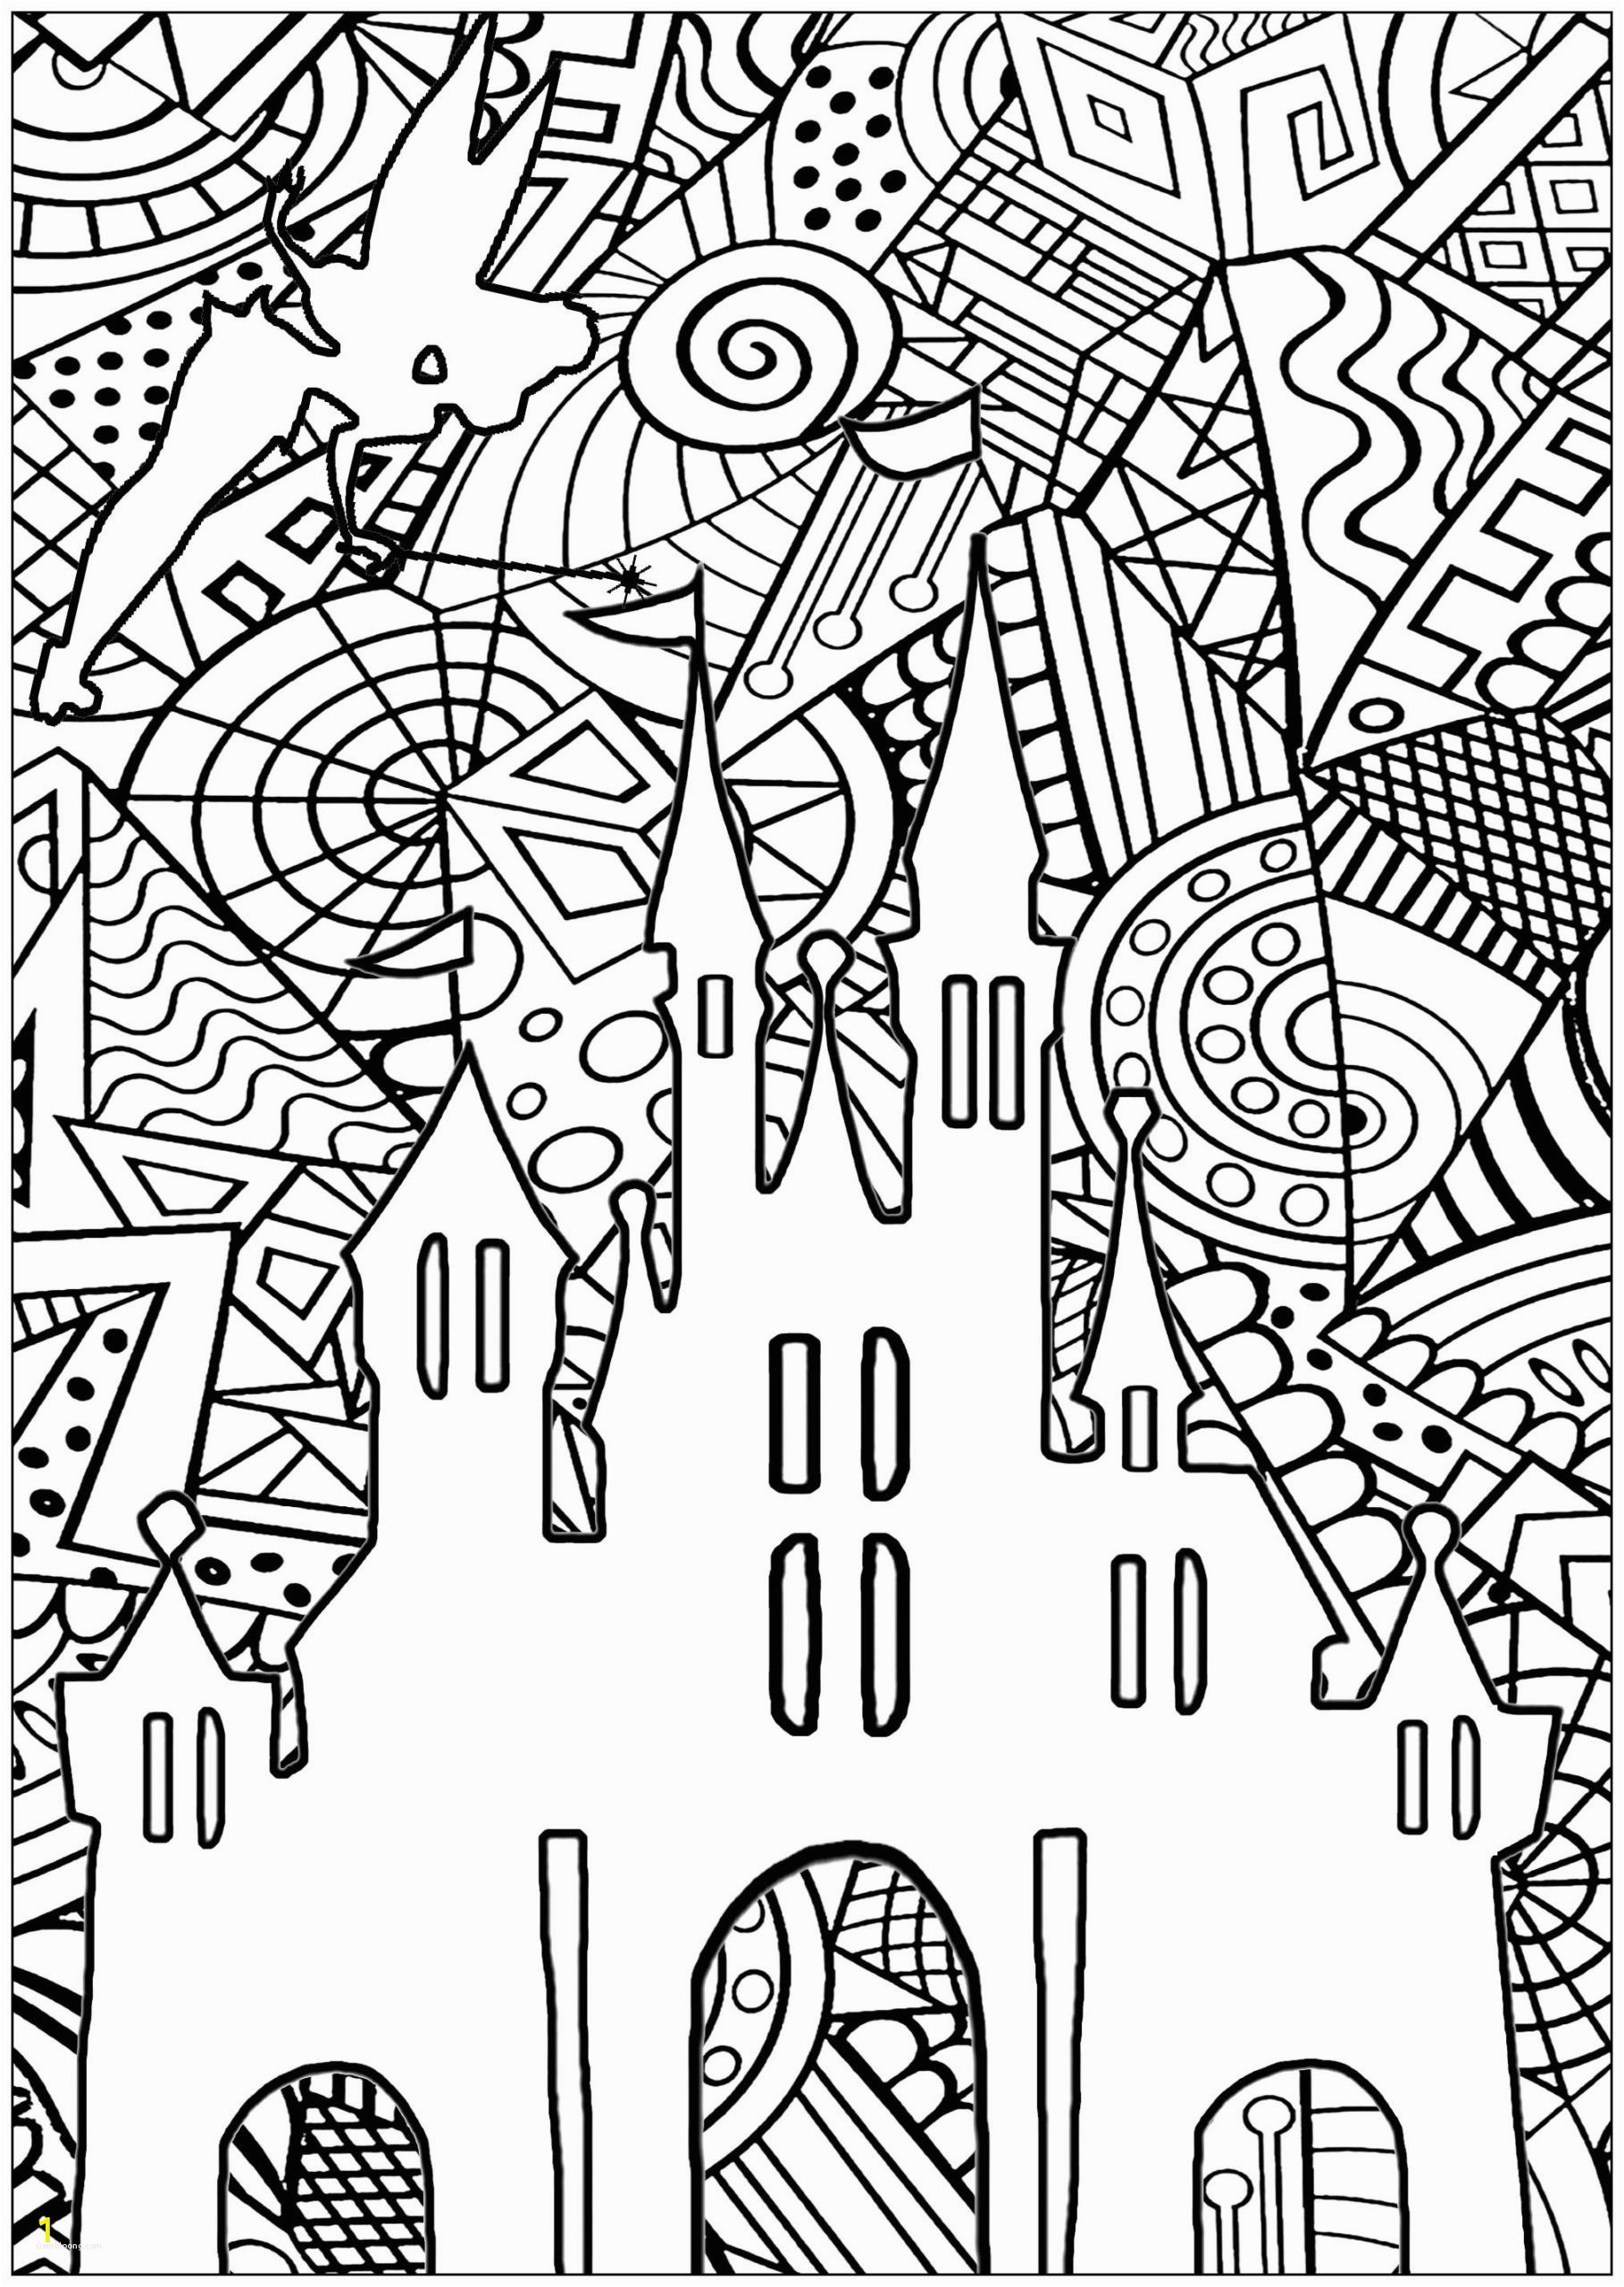 disney coloring book pdf awesome coloring book disney castle return to childhood adult of disney coloring book pdf